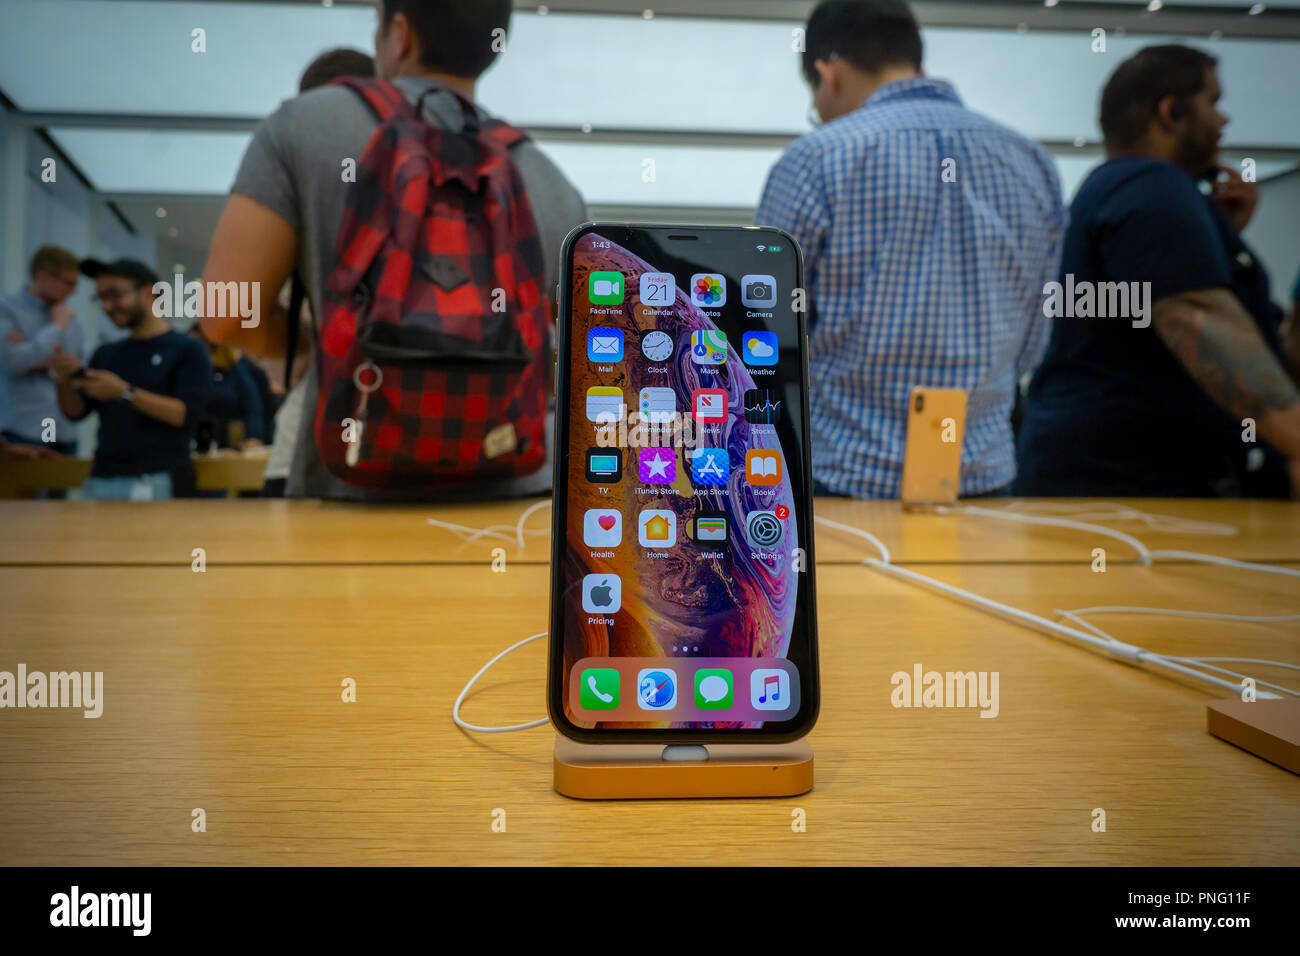 New York, USA. 21st September 2018. Customers in the Apple store in the WTC Transportation Hub in New York try out the new iPhone XS on Friday, September 21, 2018, the first day they went on sale.  The new phones, anxiously awaited by drooling iPhone aficionados, sell for a whopping $999 for the XS and $1099 for the XS Max with the Max having a 6.5 inch display.  (© Richard B. Levine) Credit: Richard Levine/Alamy Live News Credit: Richard Levine/Alamy Live News - Stock Image